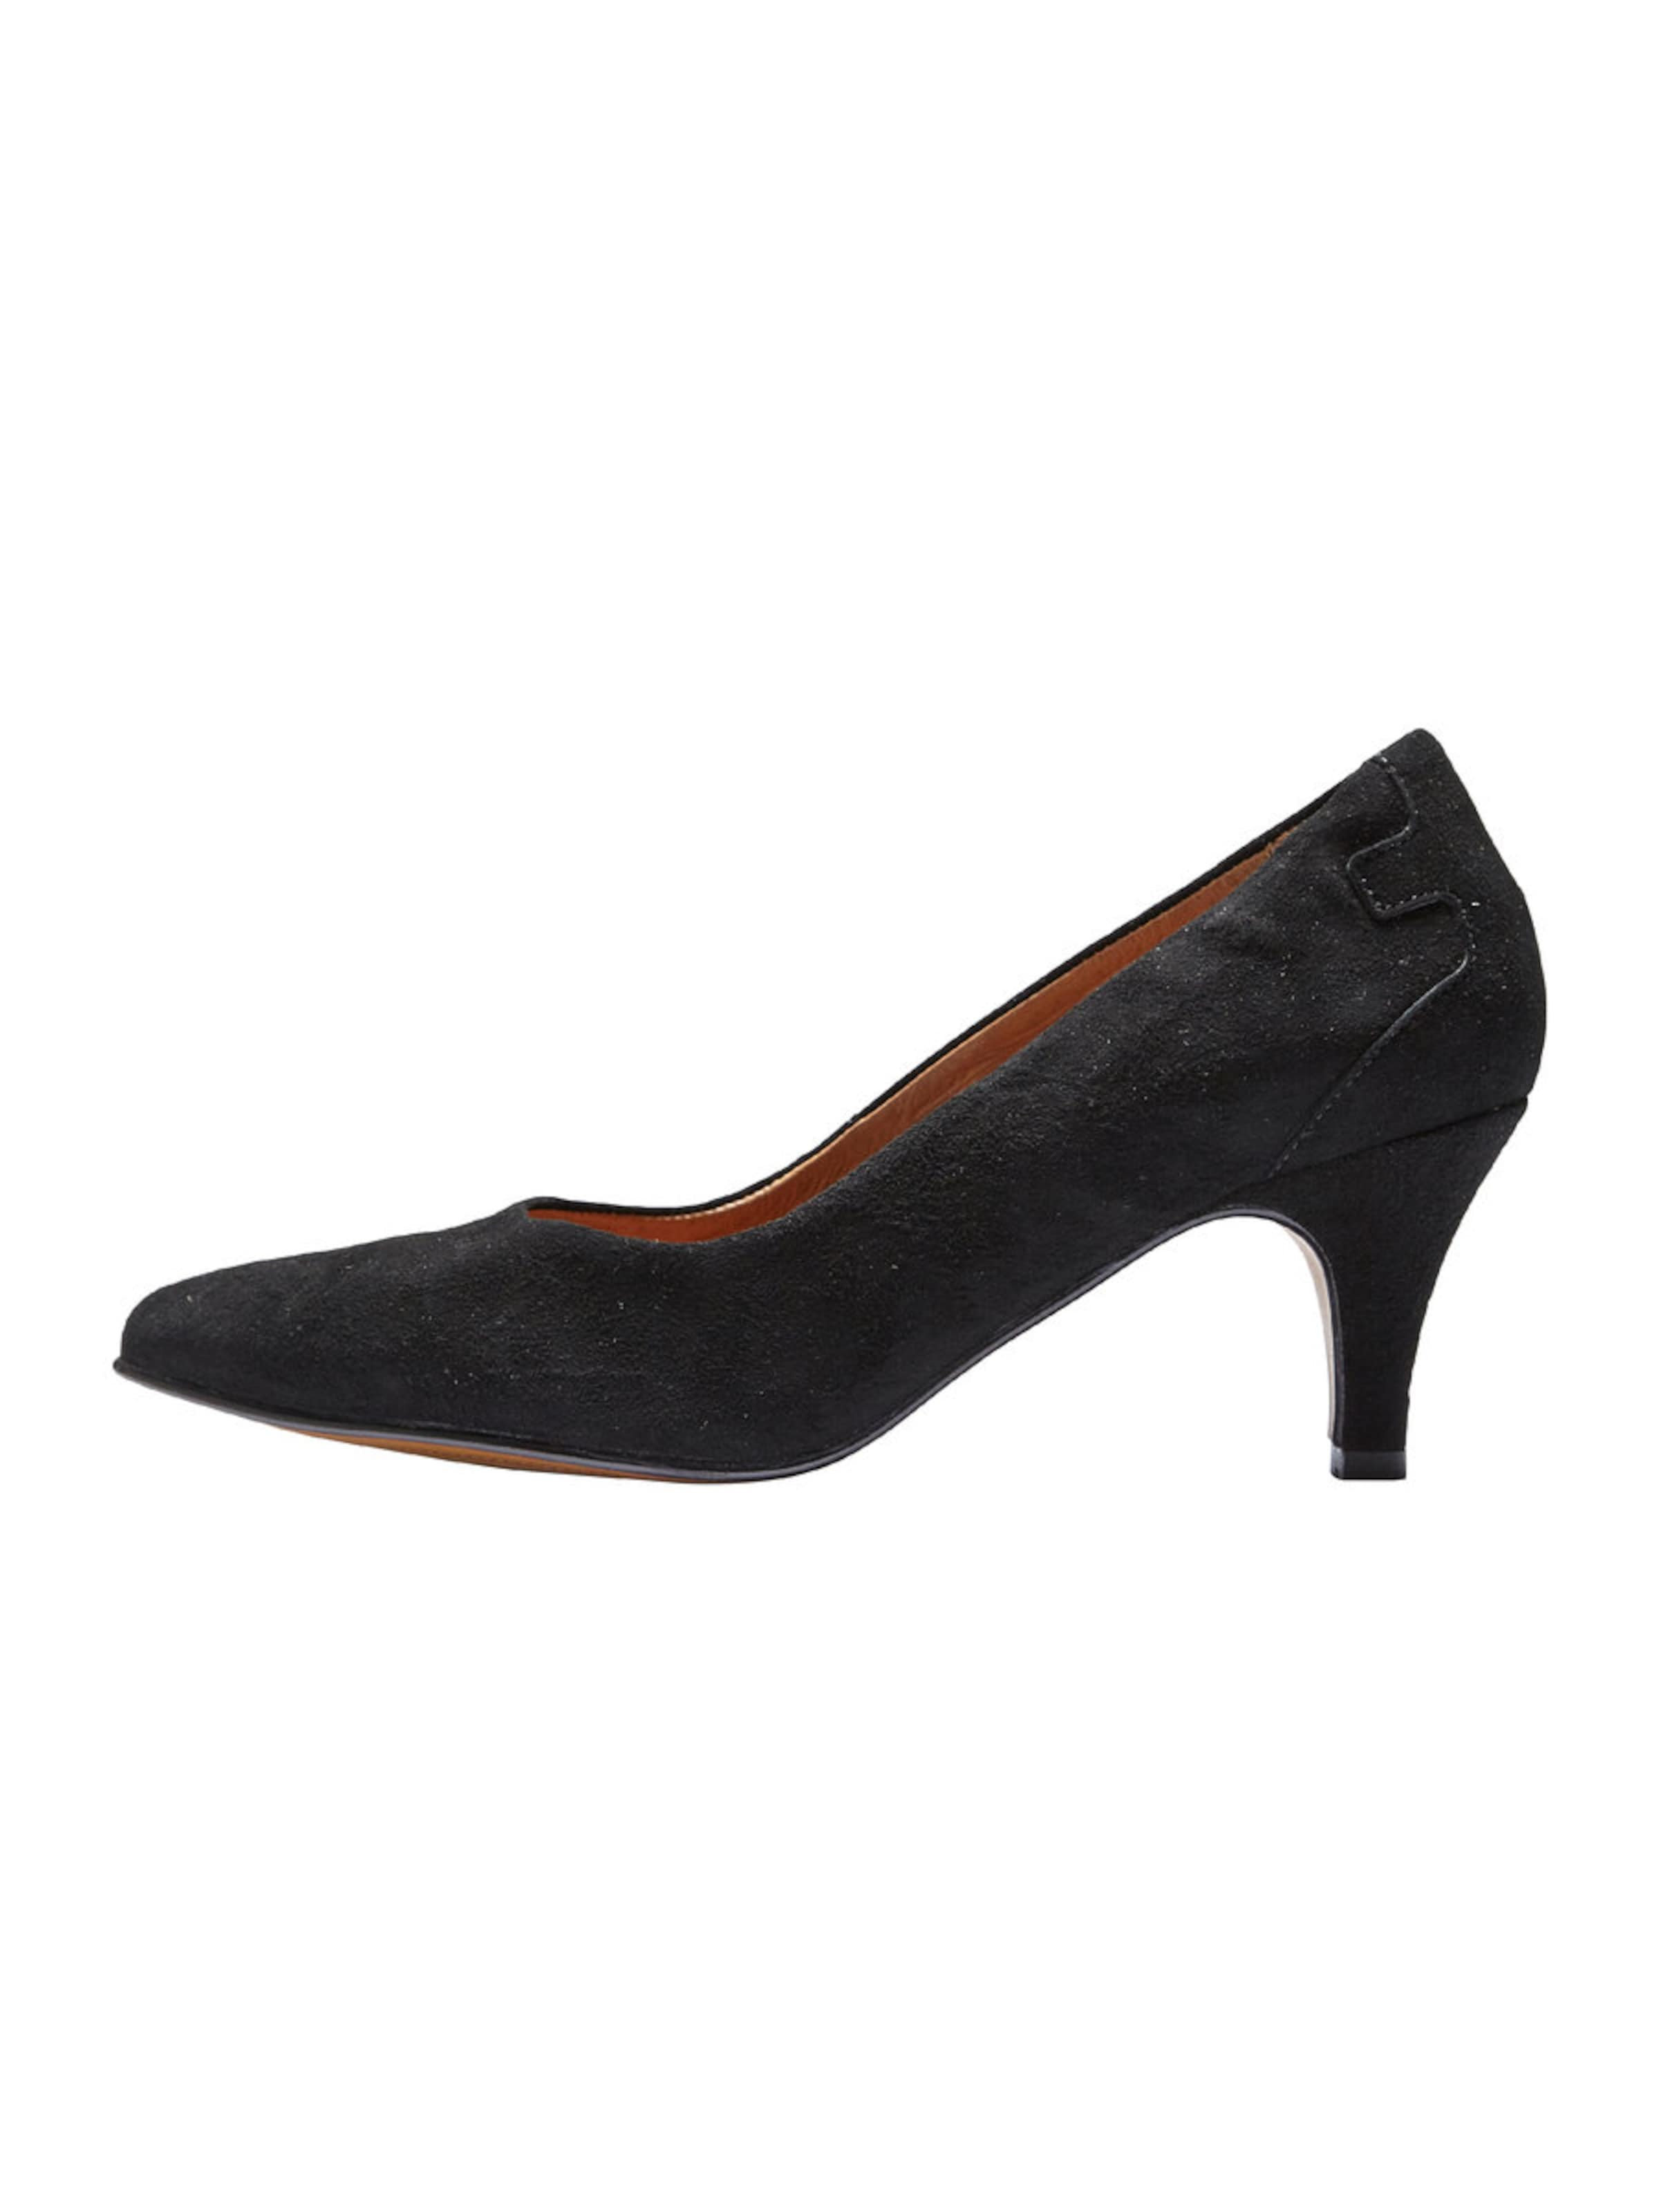 SELECTED FEMME Wildleder-Pumps Eastbay Online UapdcQWI1